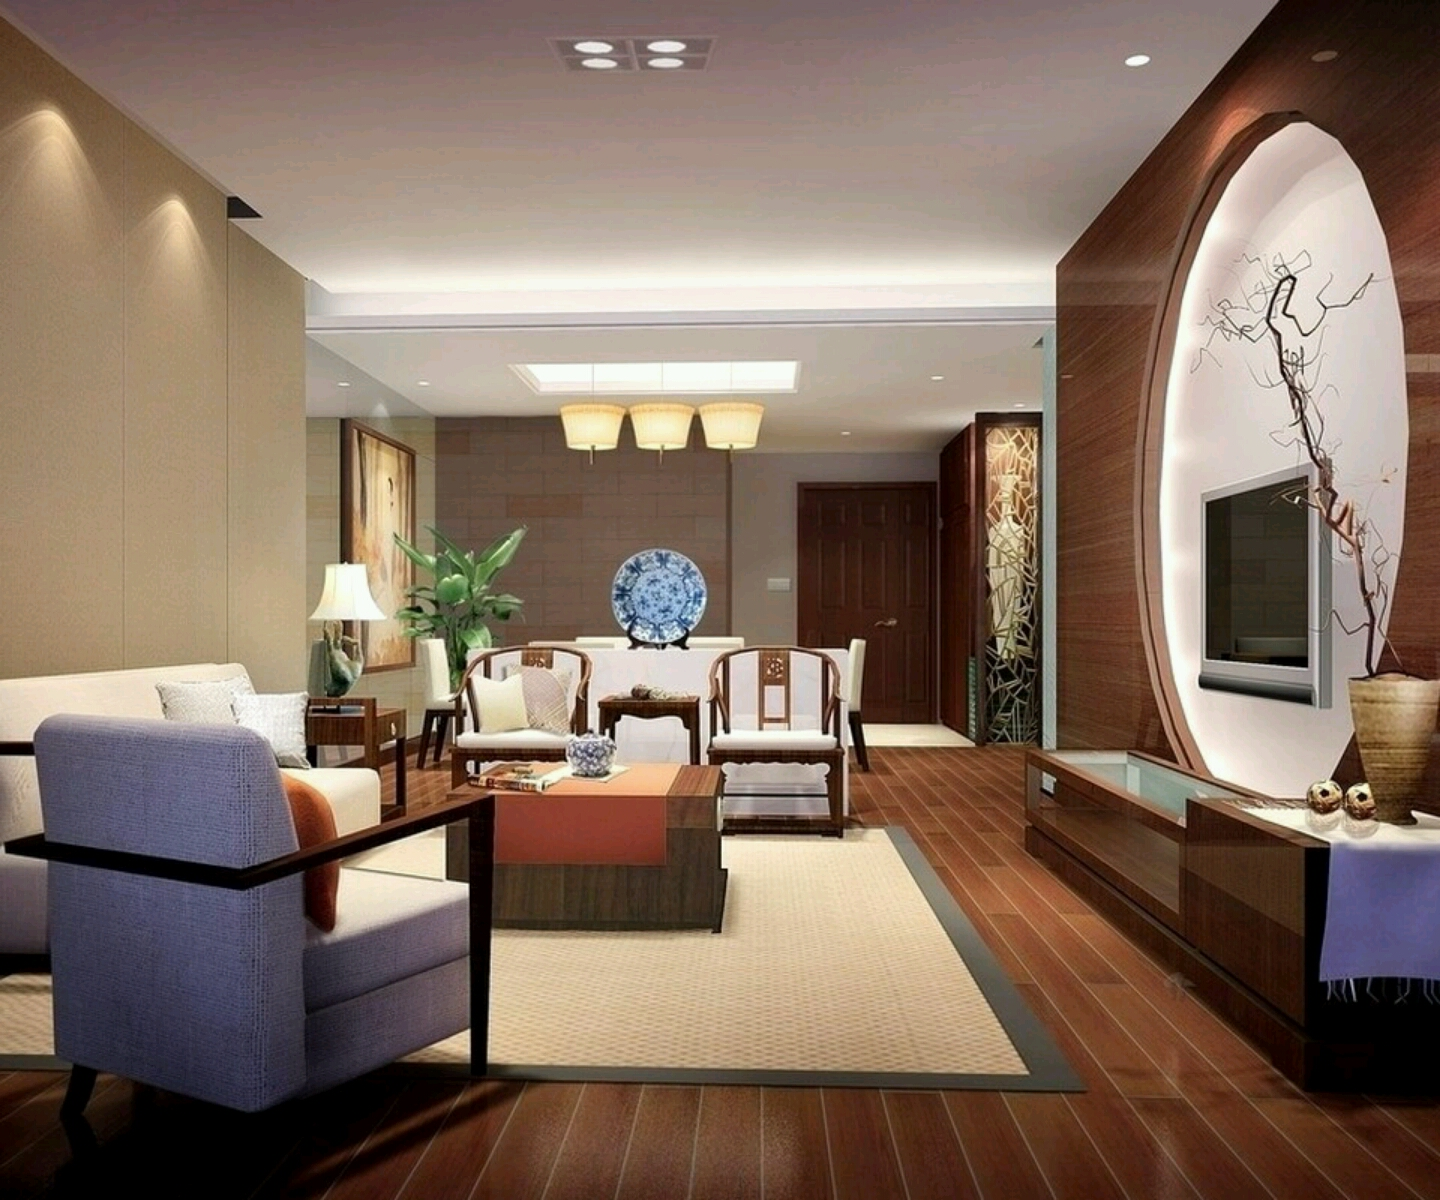 Luxury homes interior decoration living room designs ideas modern home designs - Luxury house interiors ...